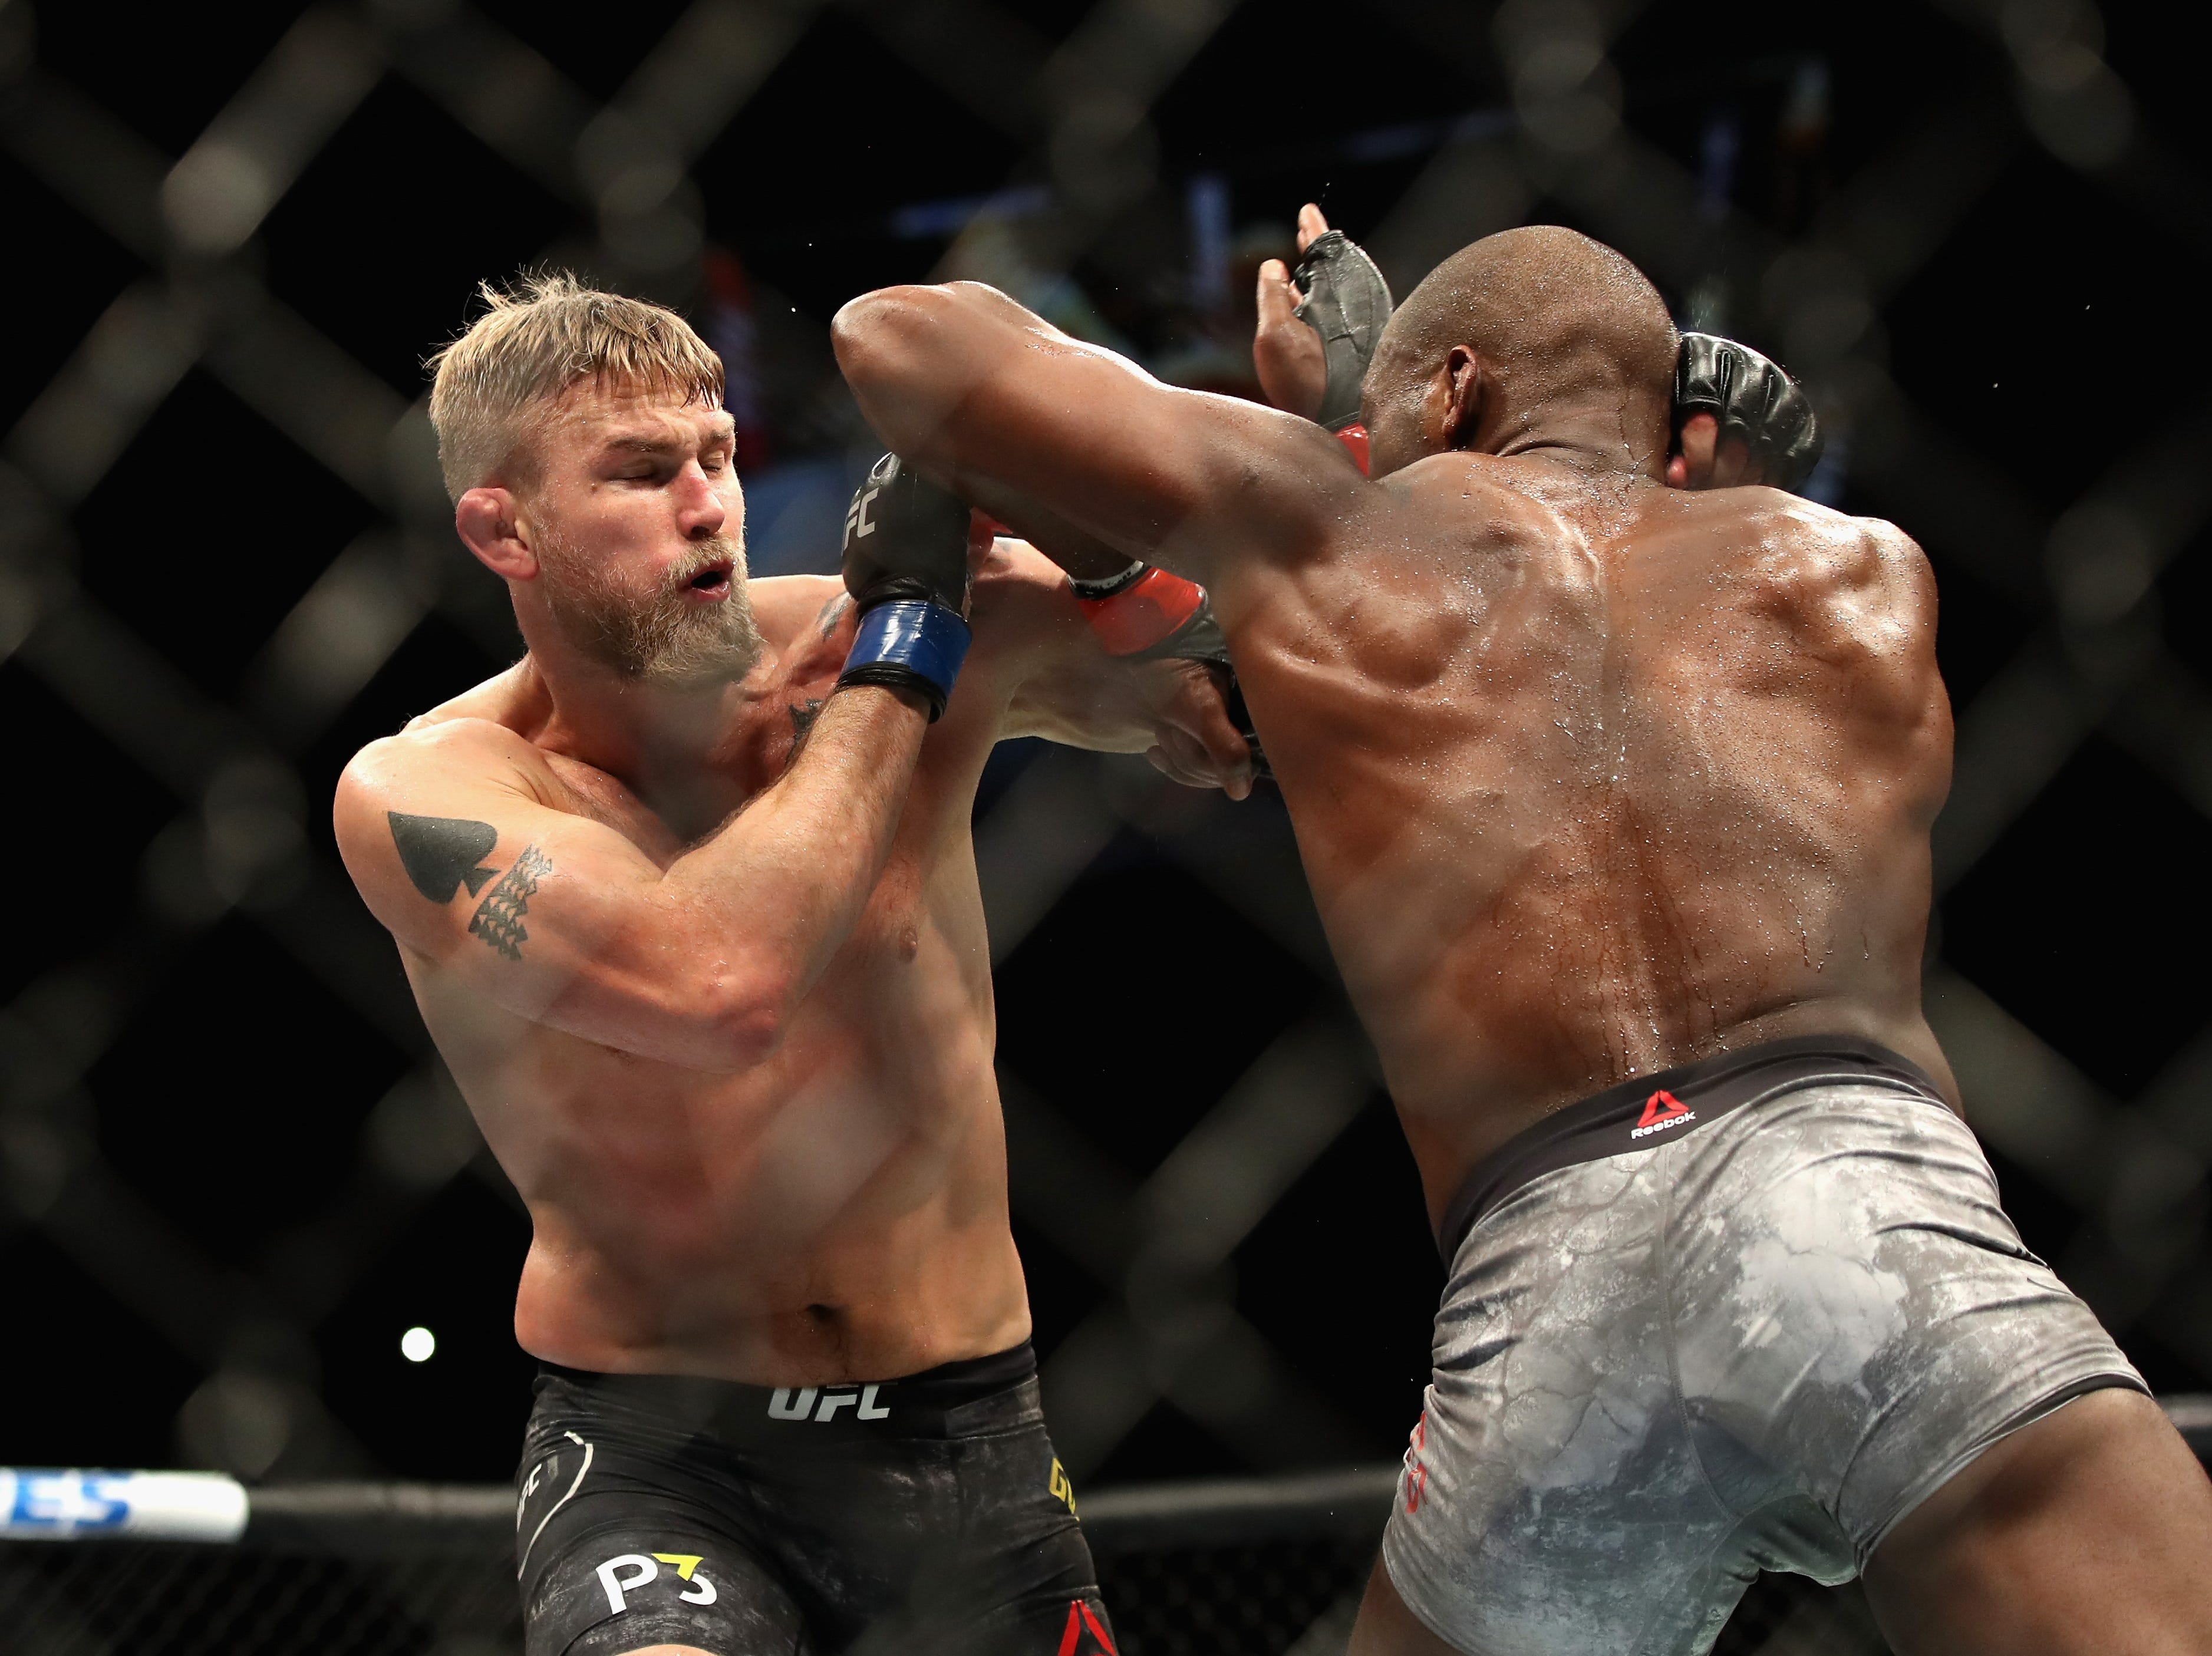 INGLEWOOD, CA - DECEMBER 29:  Jon Jones (right) punches Alexander Gustafsson of Sweden (left) during a Light Heavyweight titlebout during the UFC 232 event inside The Forum on December 29, 2018 in Inglewood, California.   Jones defeated Gustafsson by KO.  (Photo by Sean M. Haffey/Getty Images)